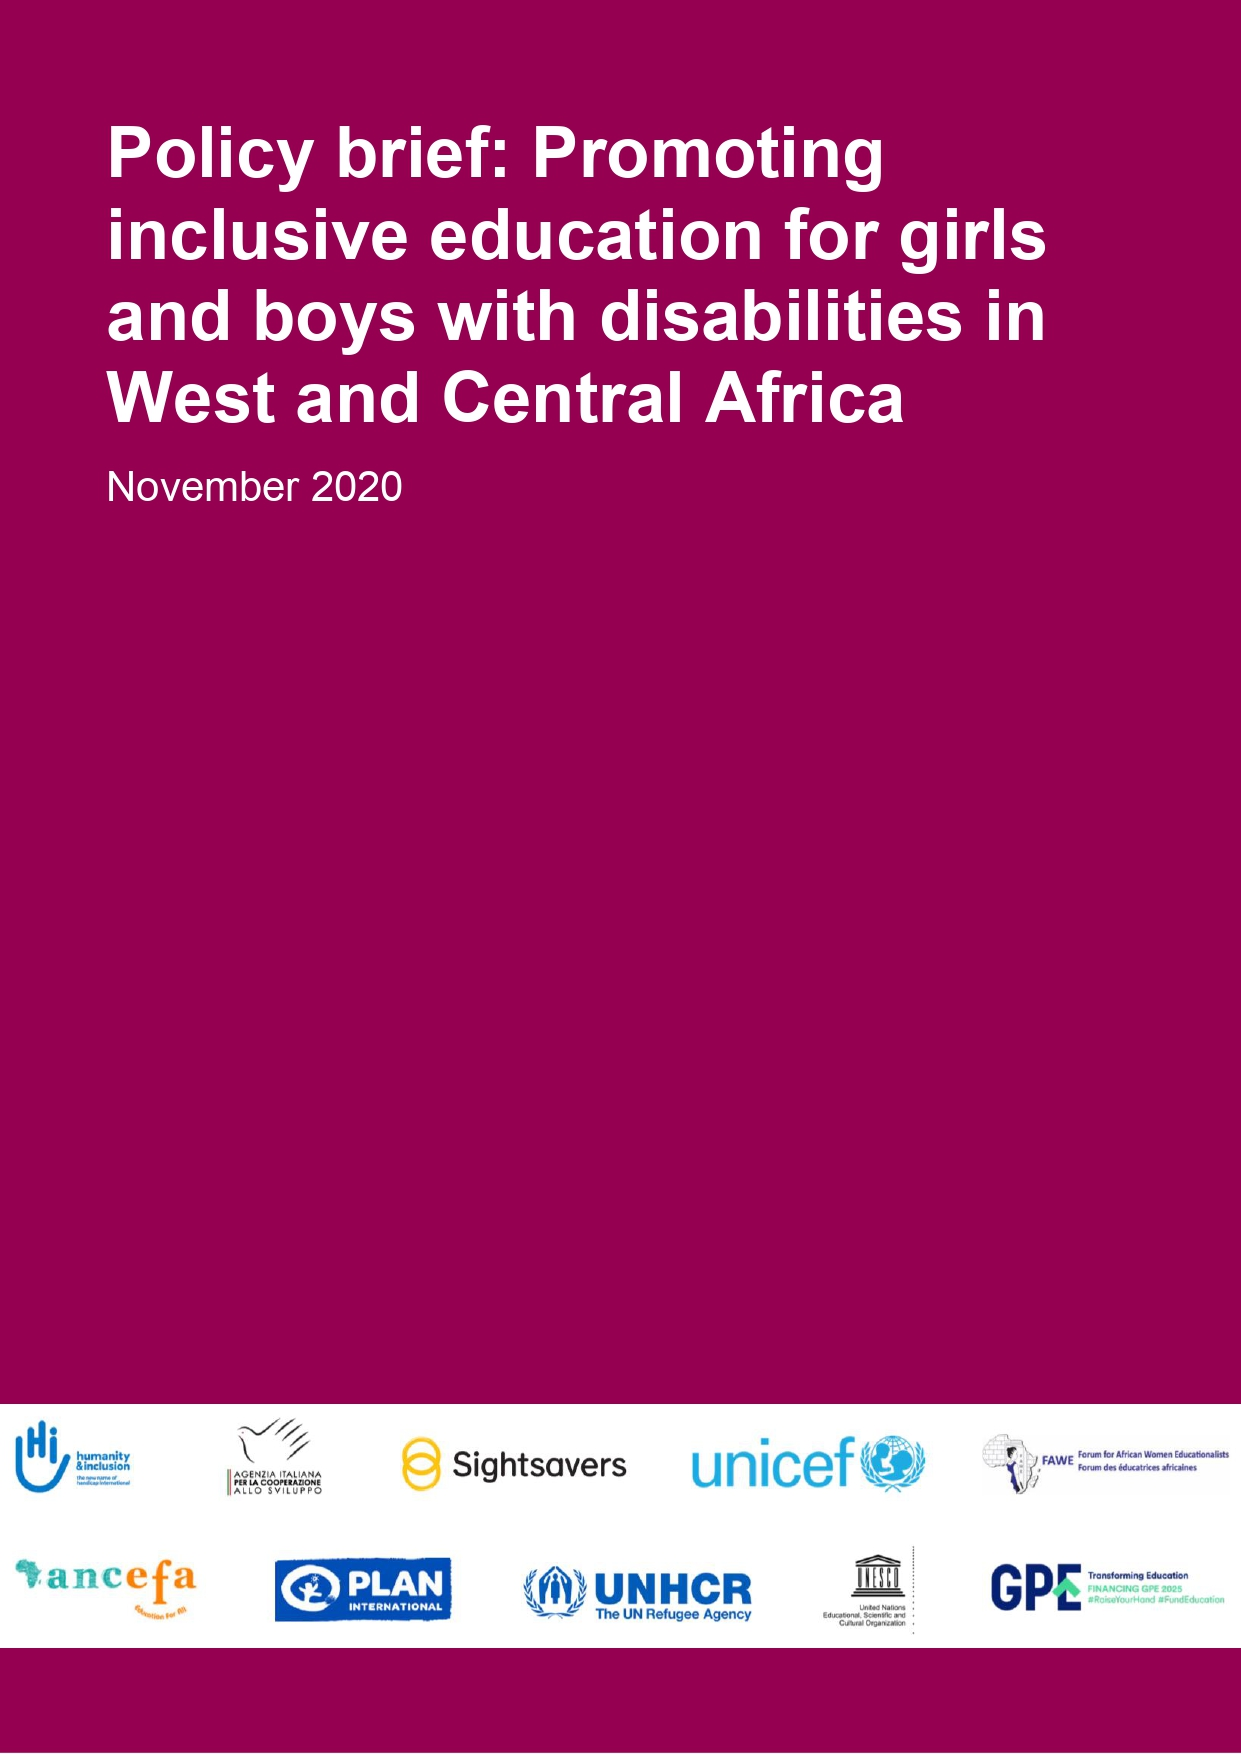 Policy brief: Promoting inclusive education for girls and boys with disabilities in West and Central Africa